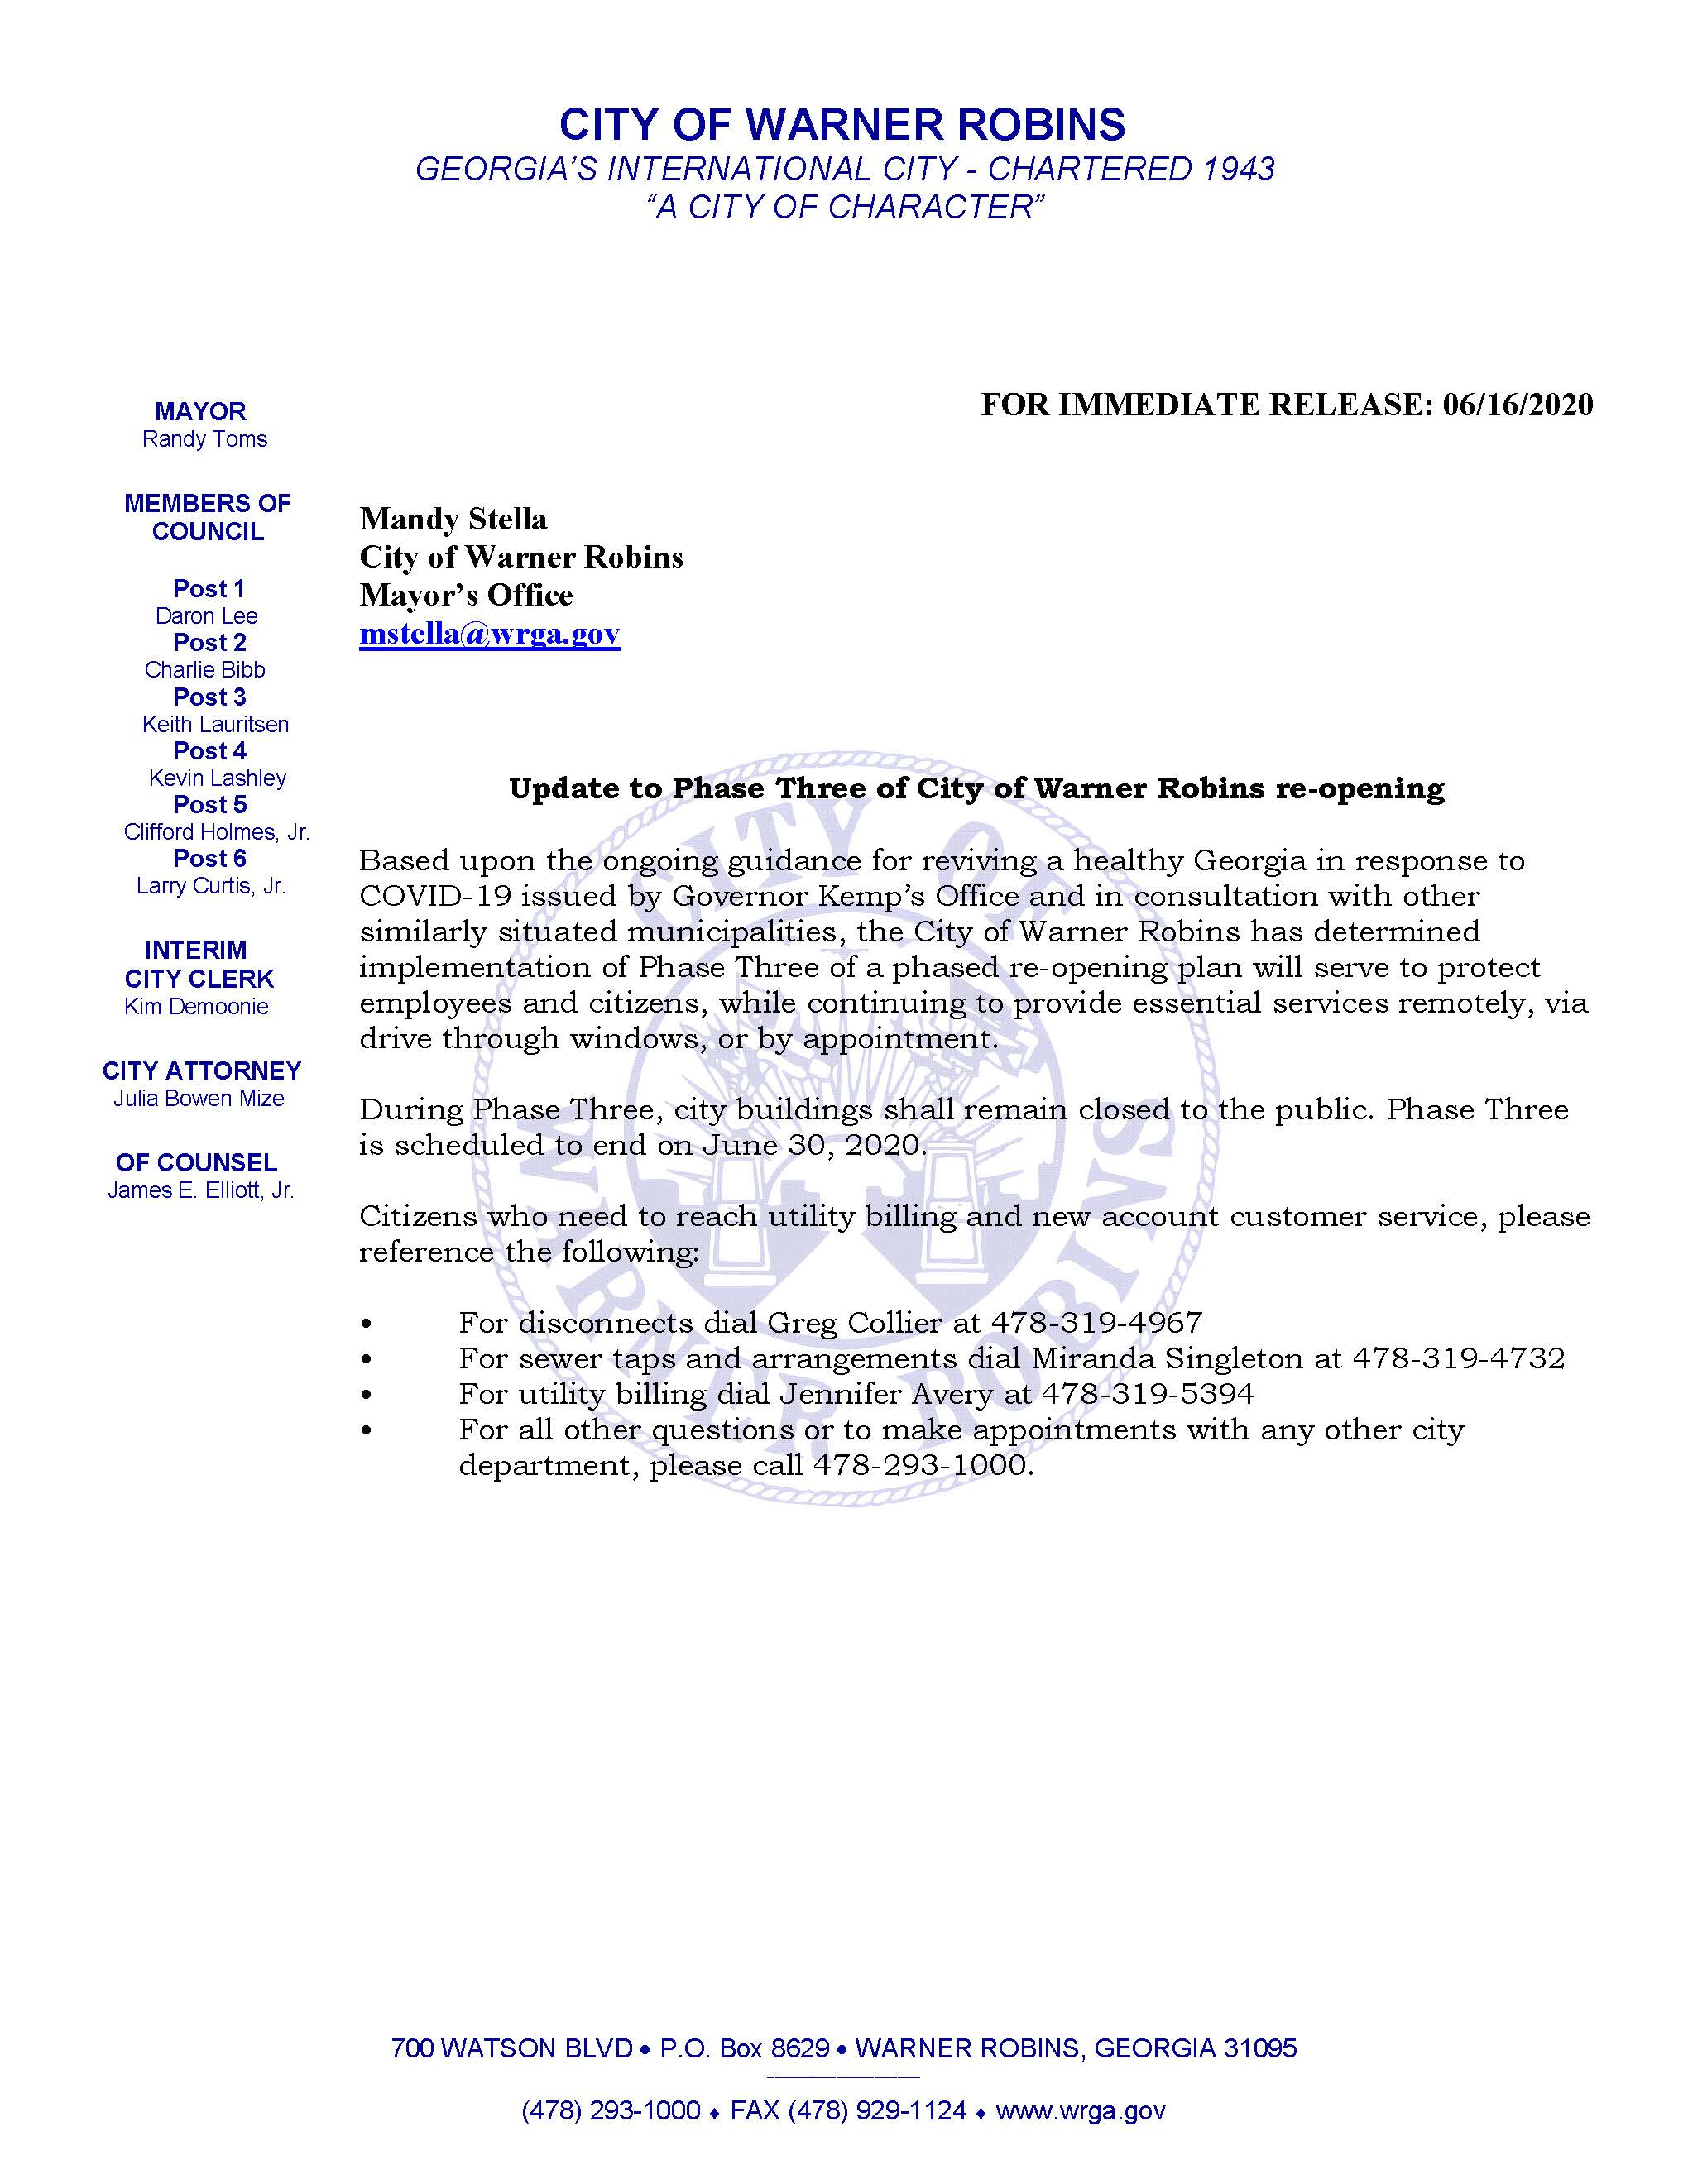 Update to Phase Three of City of Warner Robins re-opening